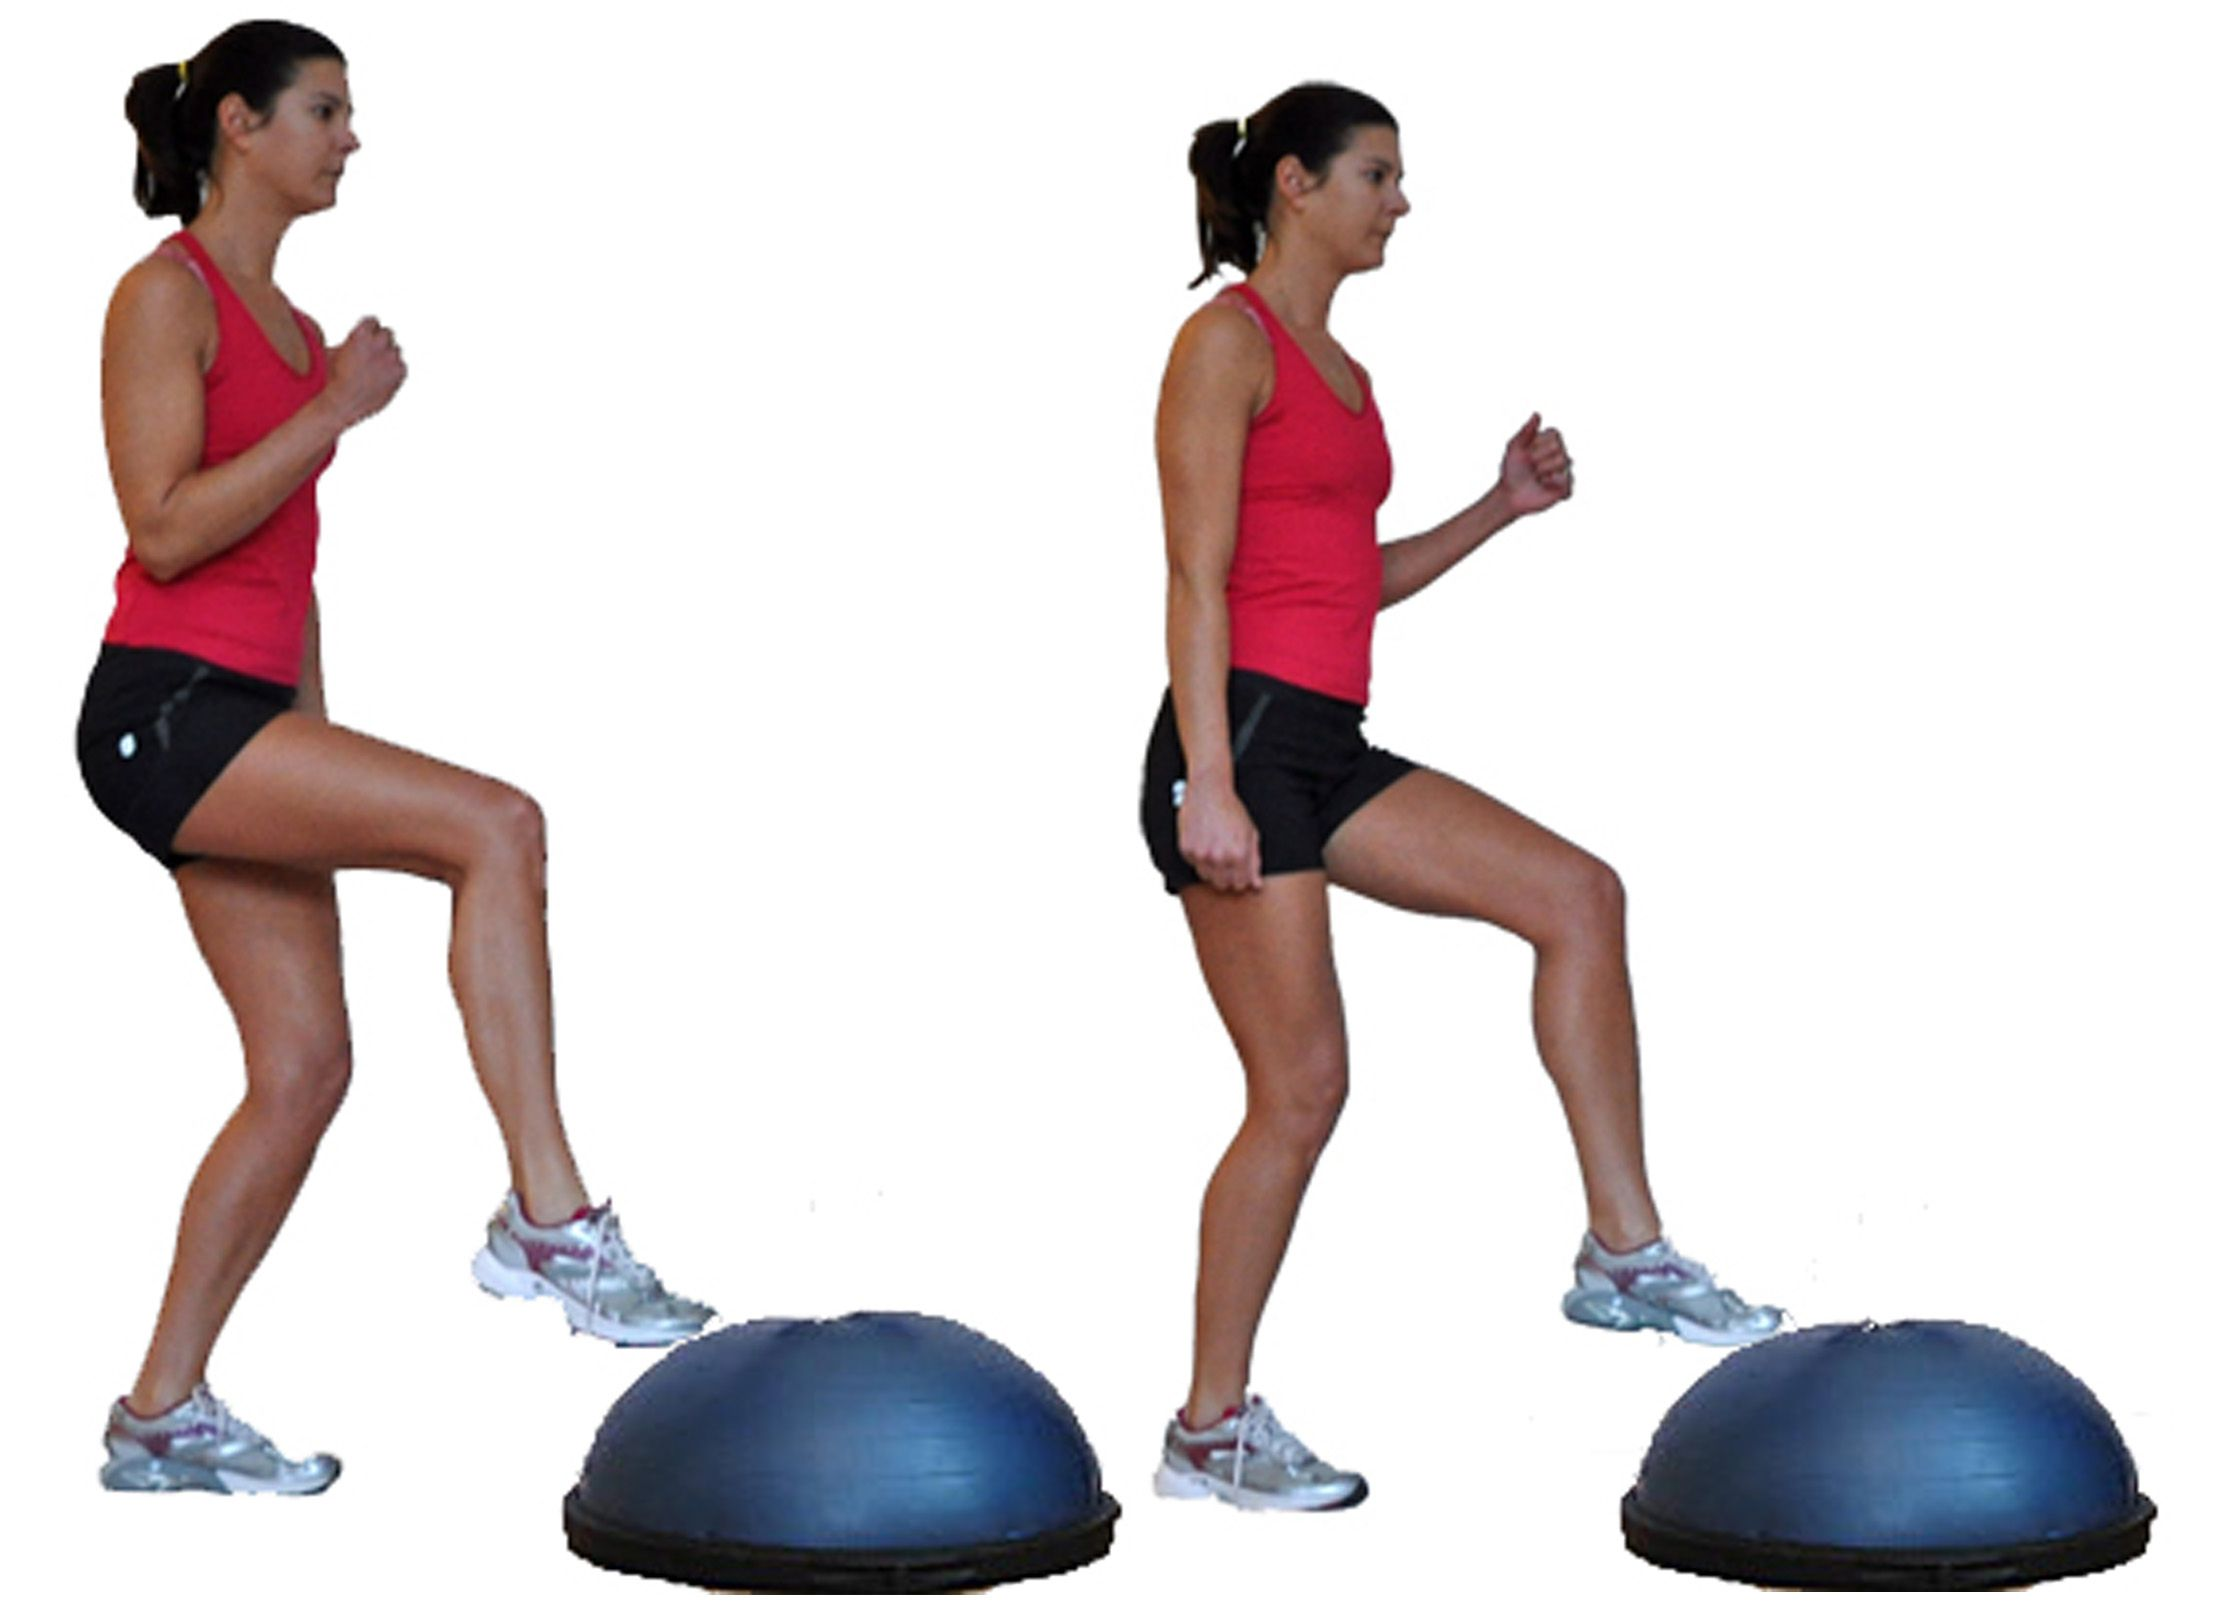 Cardio Strength Circuit Challenge Workout Arms Legs Abs 1 Toe Taps To Bosu